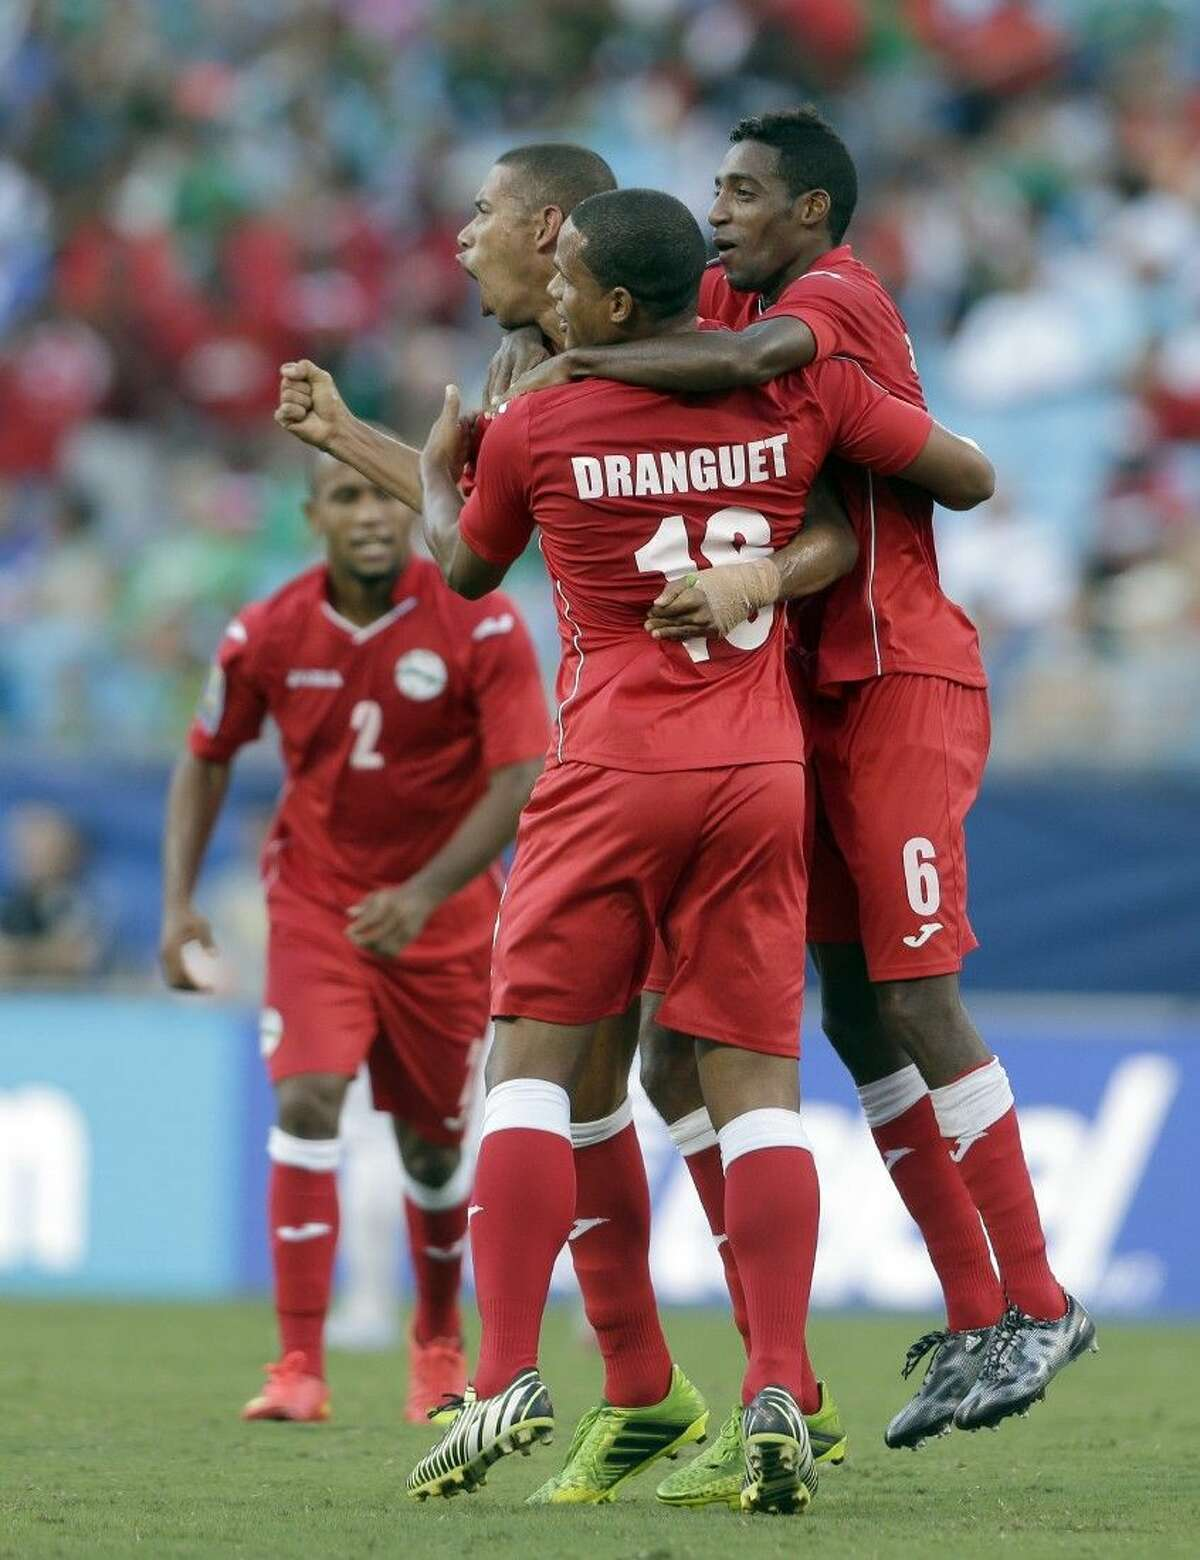 Cuba players celebrate after a CONCACAF Gold Cup soccer match against Guatemala in Charlotte, N.C., Wednesday.